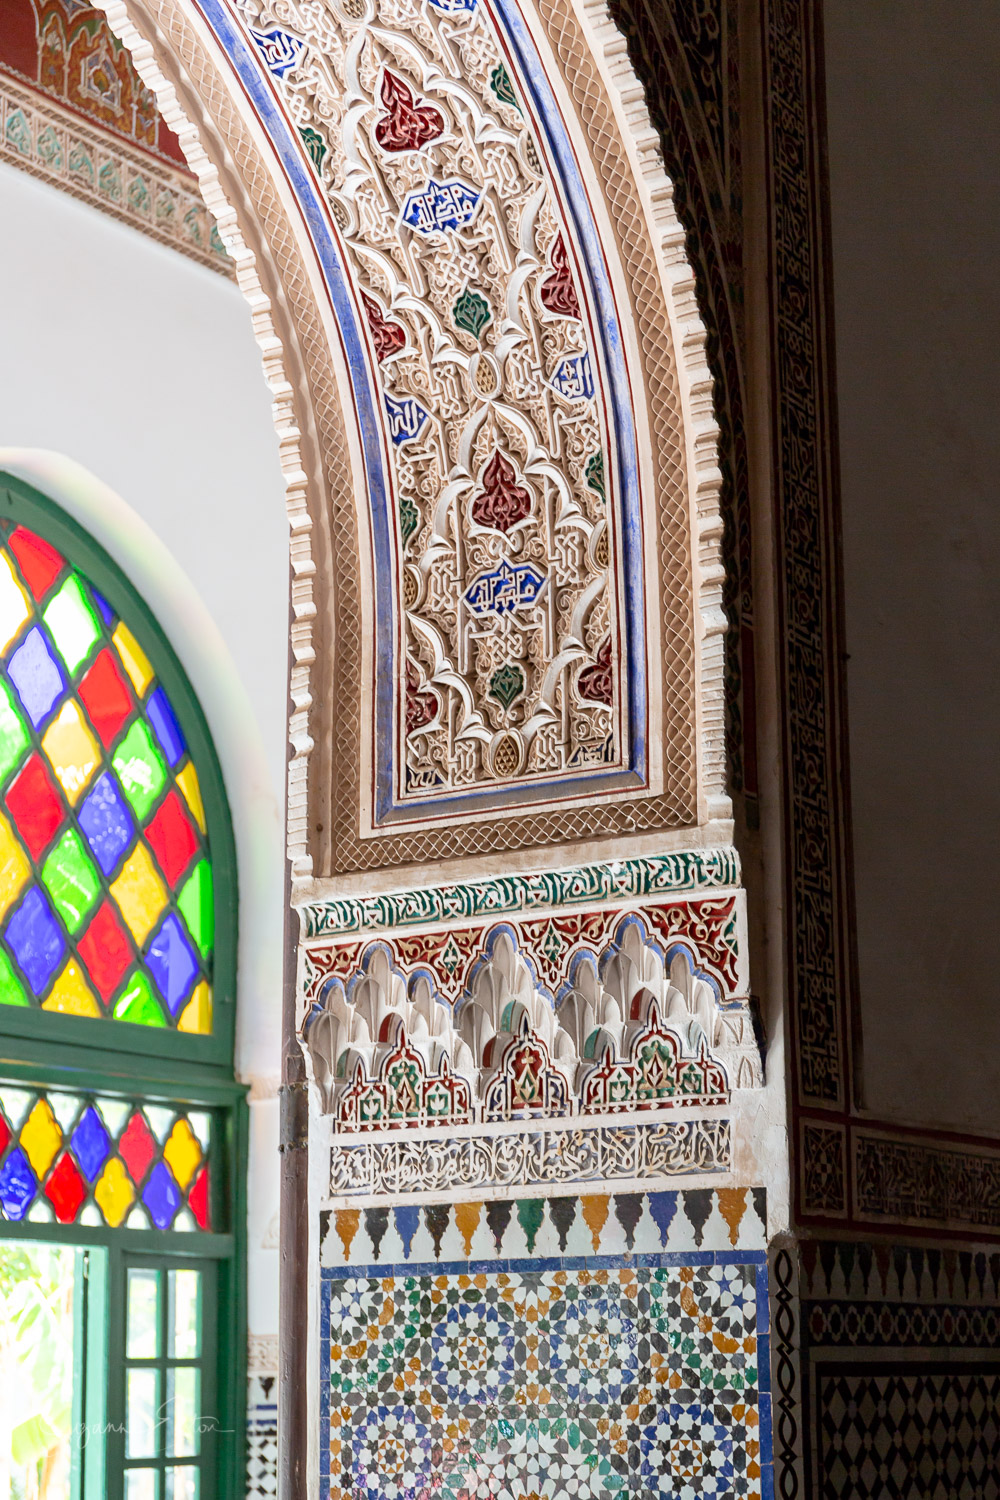 Carvings and stained glass at Palais Bahia in Marrakech